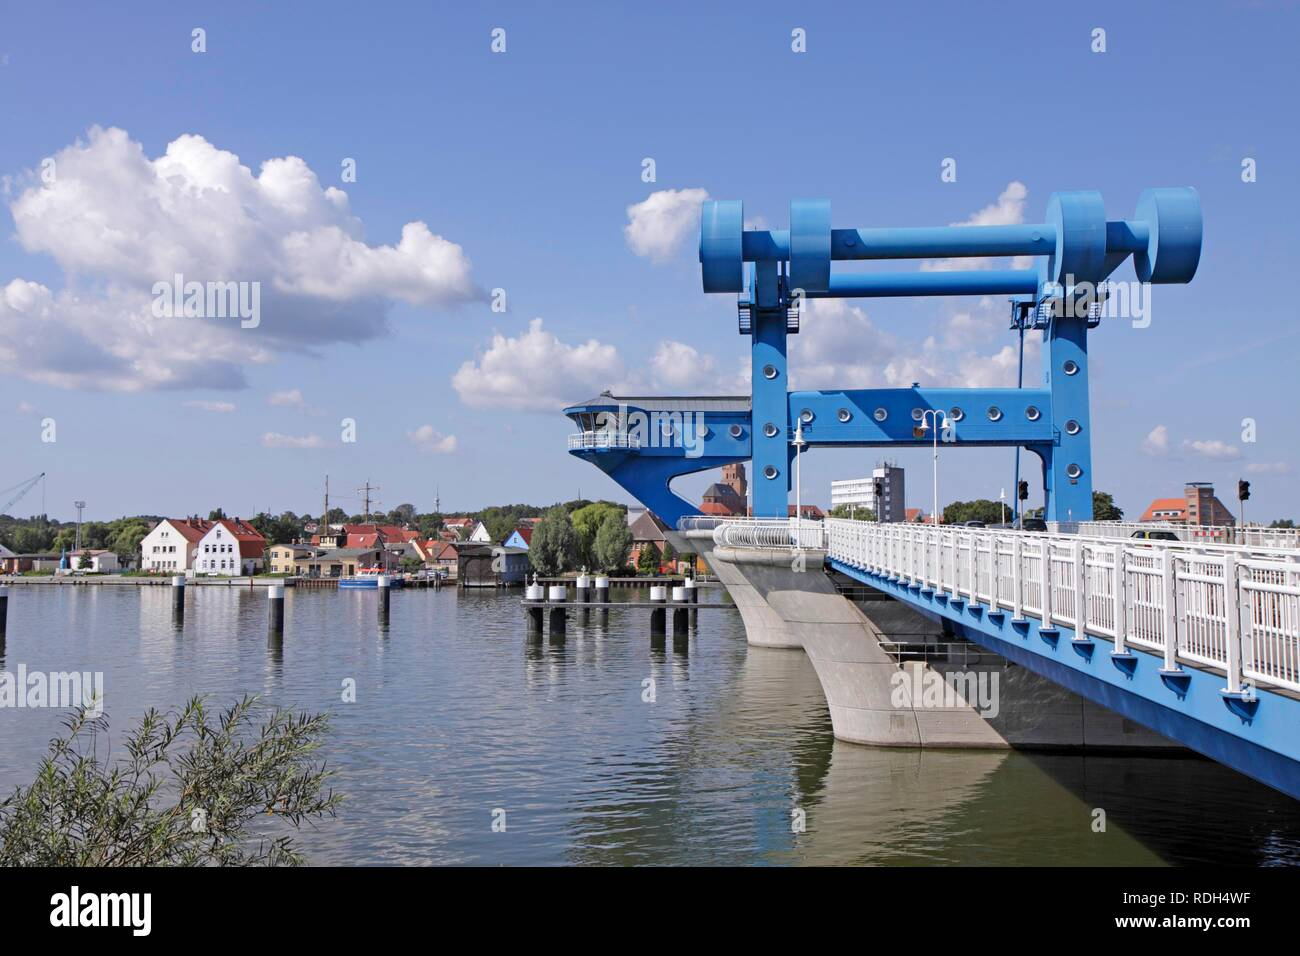 Lift bridge between Wolgast and Usedom island, Baltic Sea, Mecklenburg-Western Pomerania - Stock Image